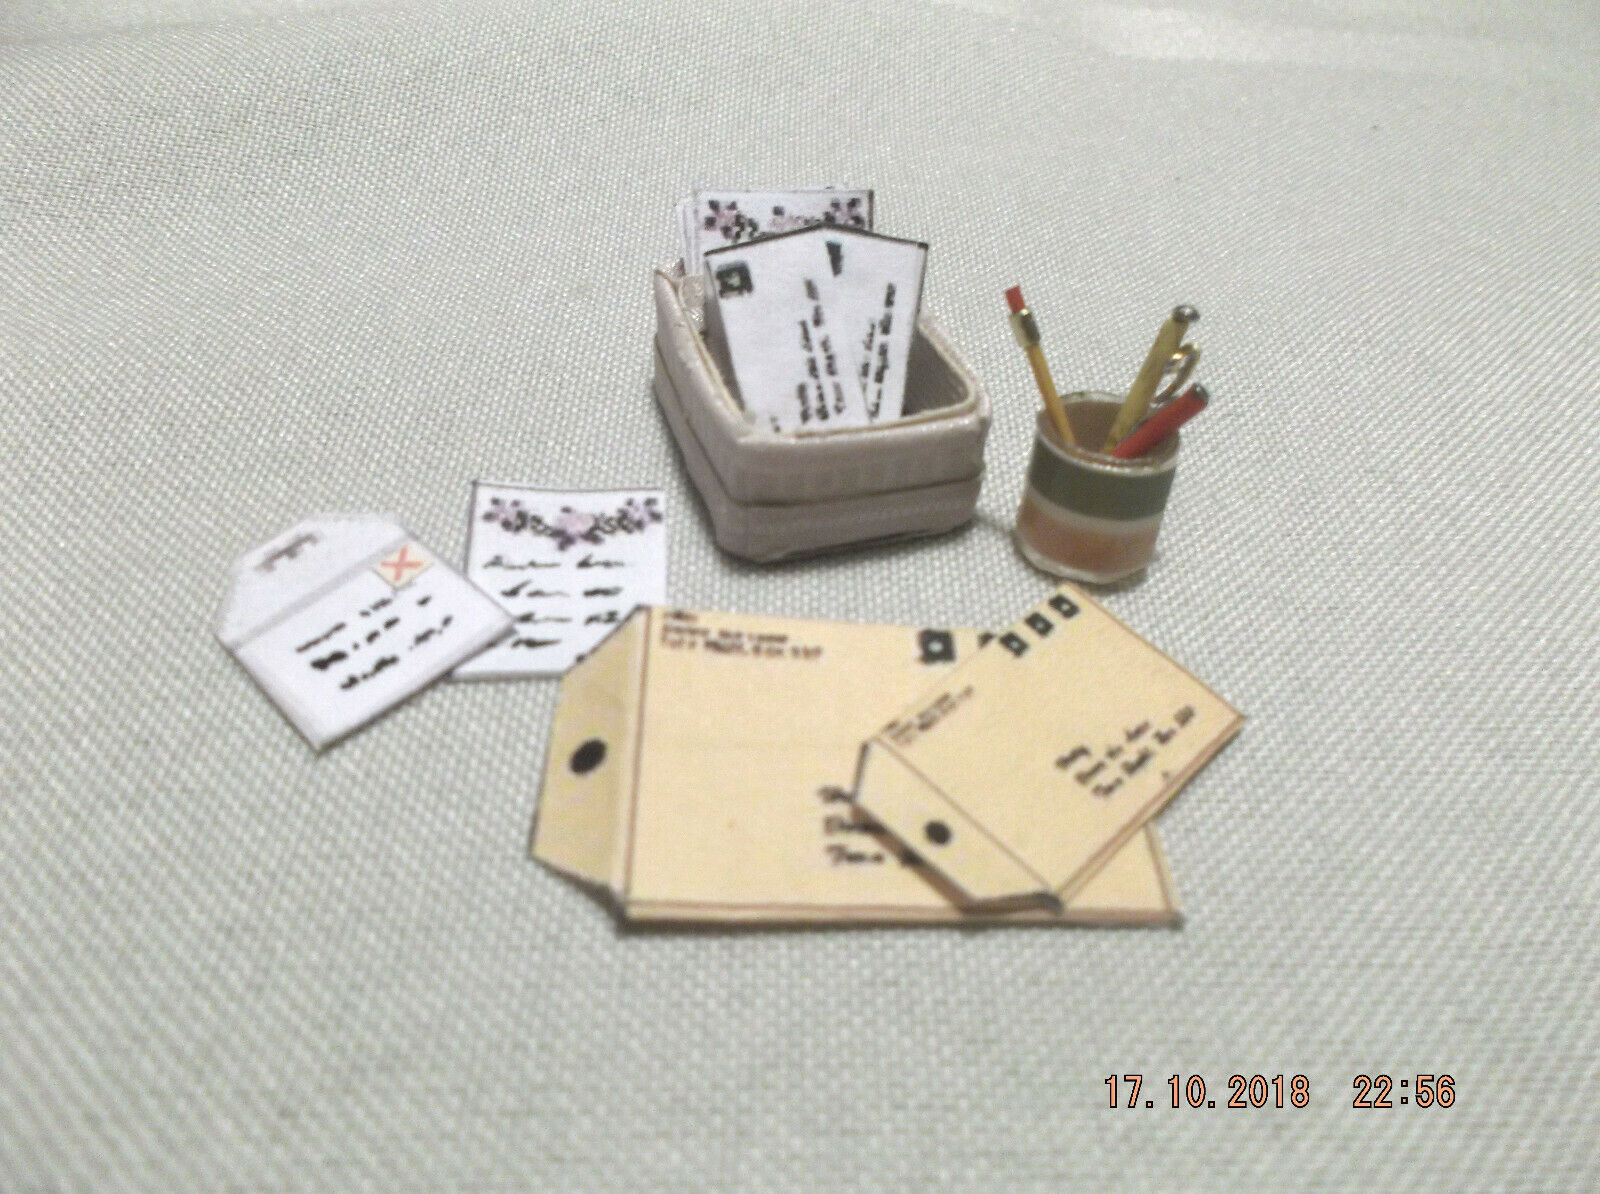 Dollhouse Miniature Handcrafted Stationary Box With Stationary, Pens, And Pencil - $9.00